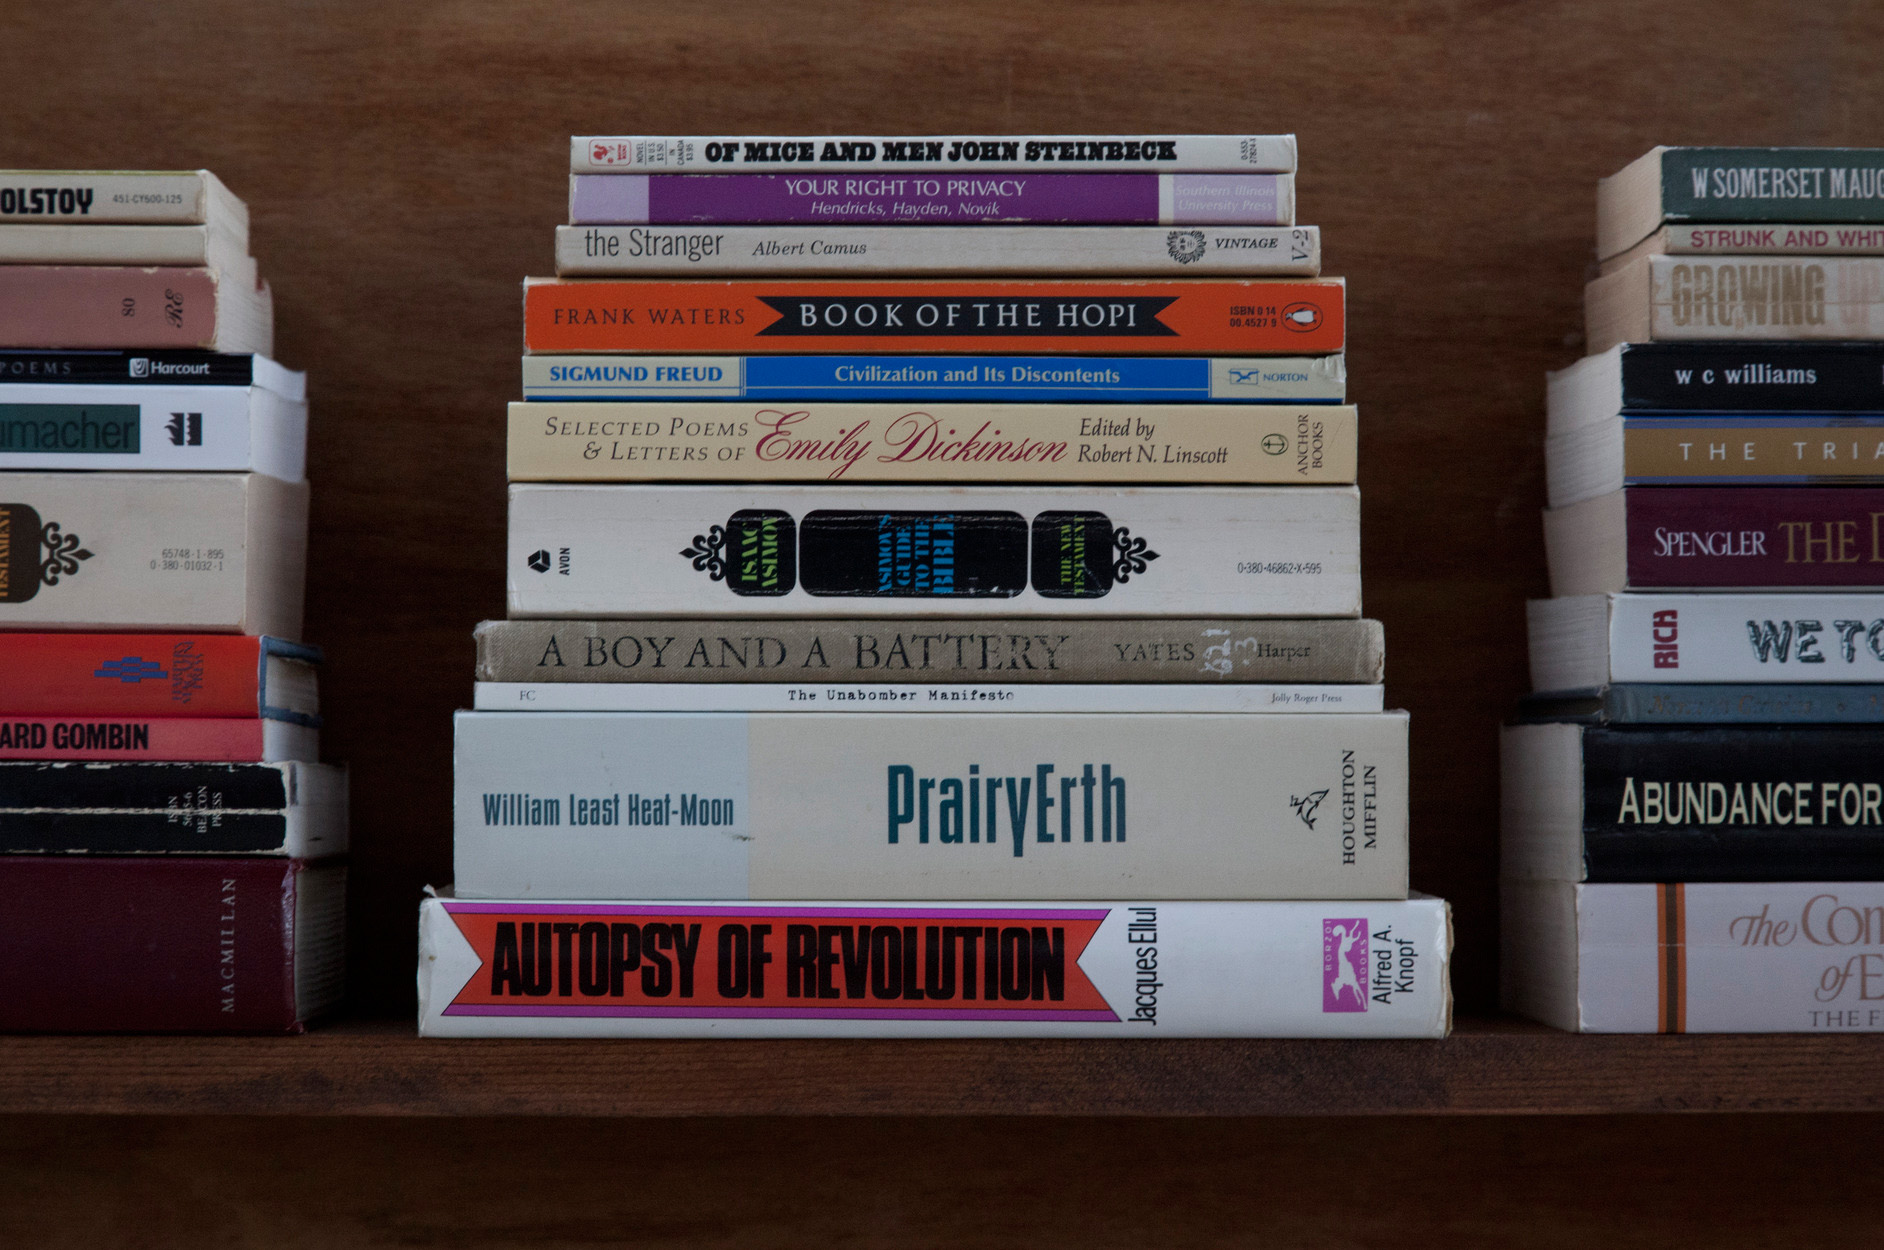 James Benning, <em>Ted Kaczynski Cabin: Library (detail)</em>, 2008. Photograph.